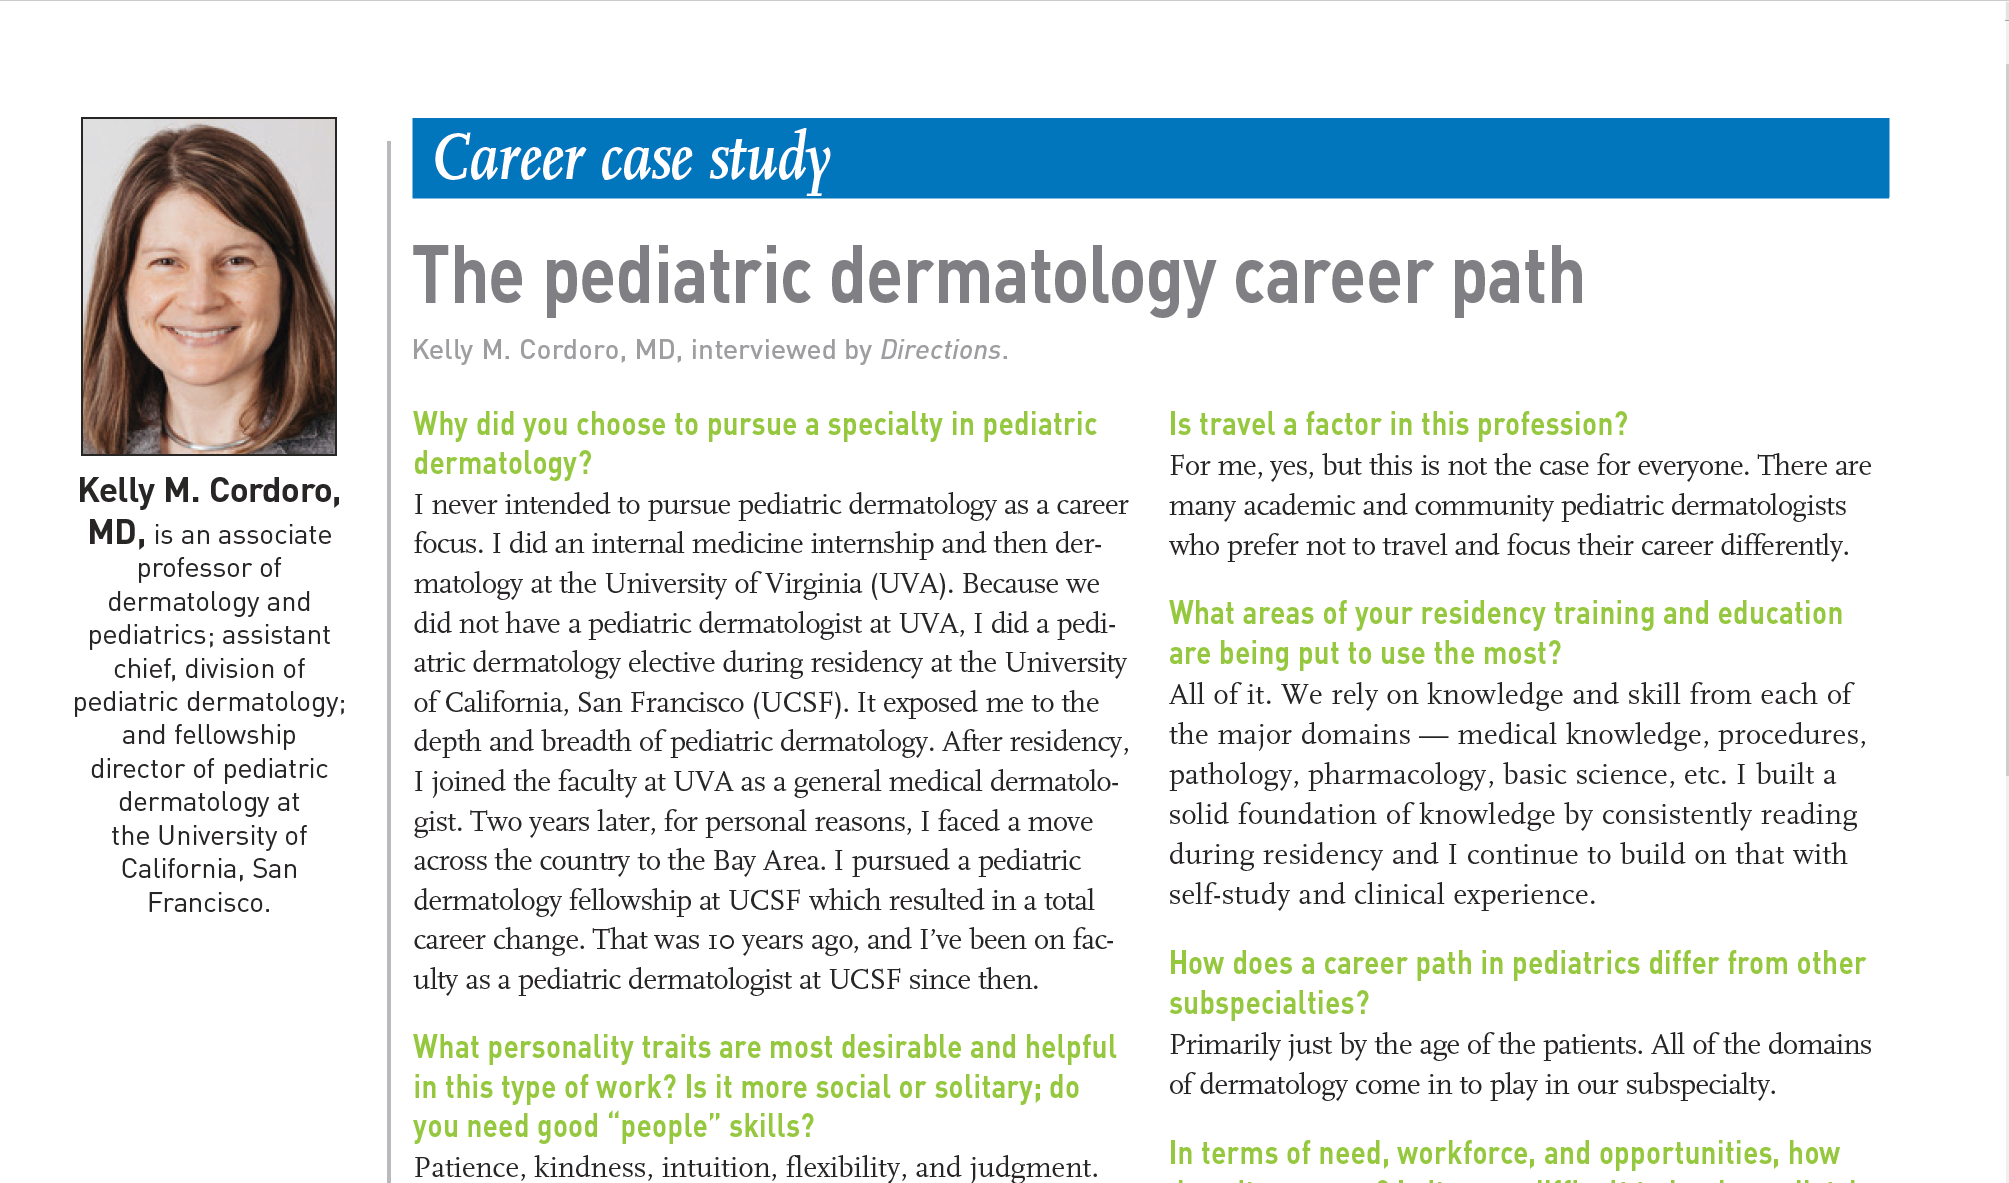 PDF of pediatric career case study